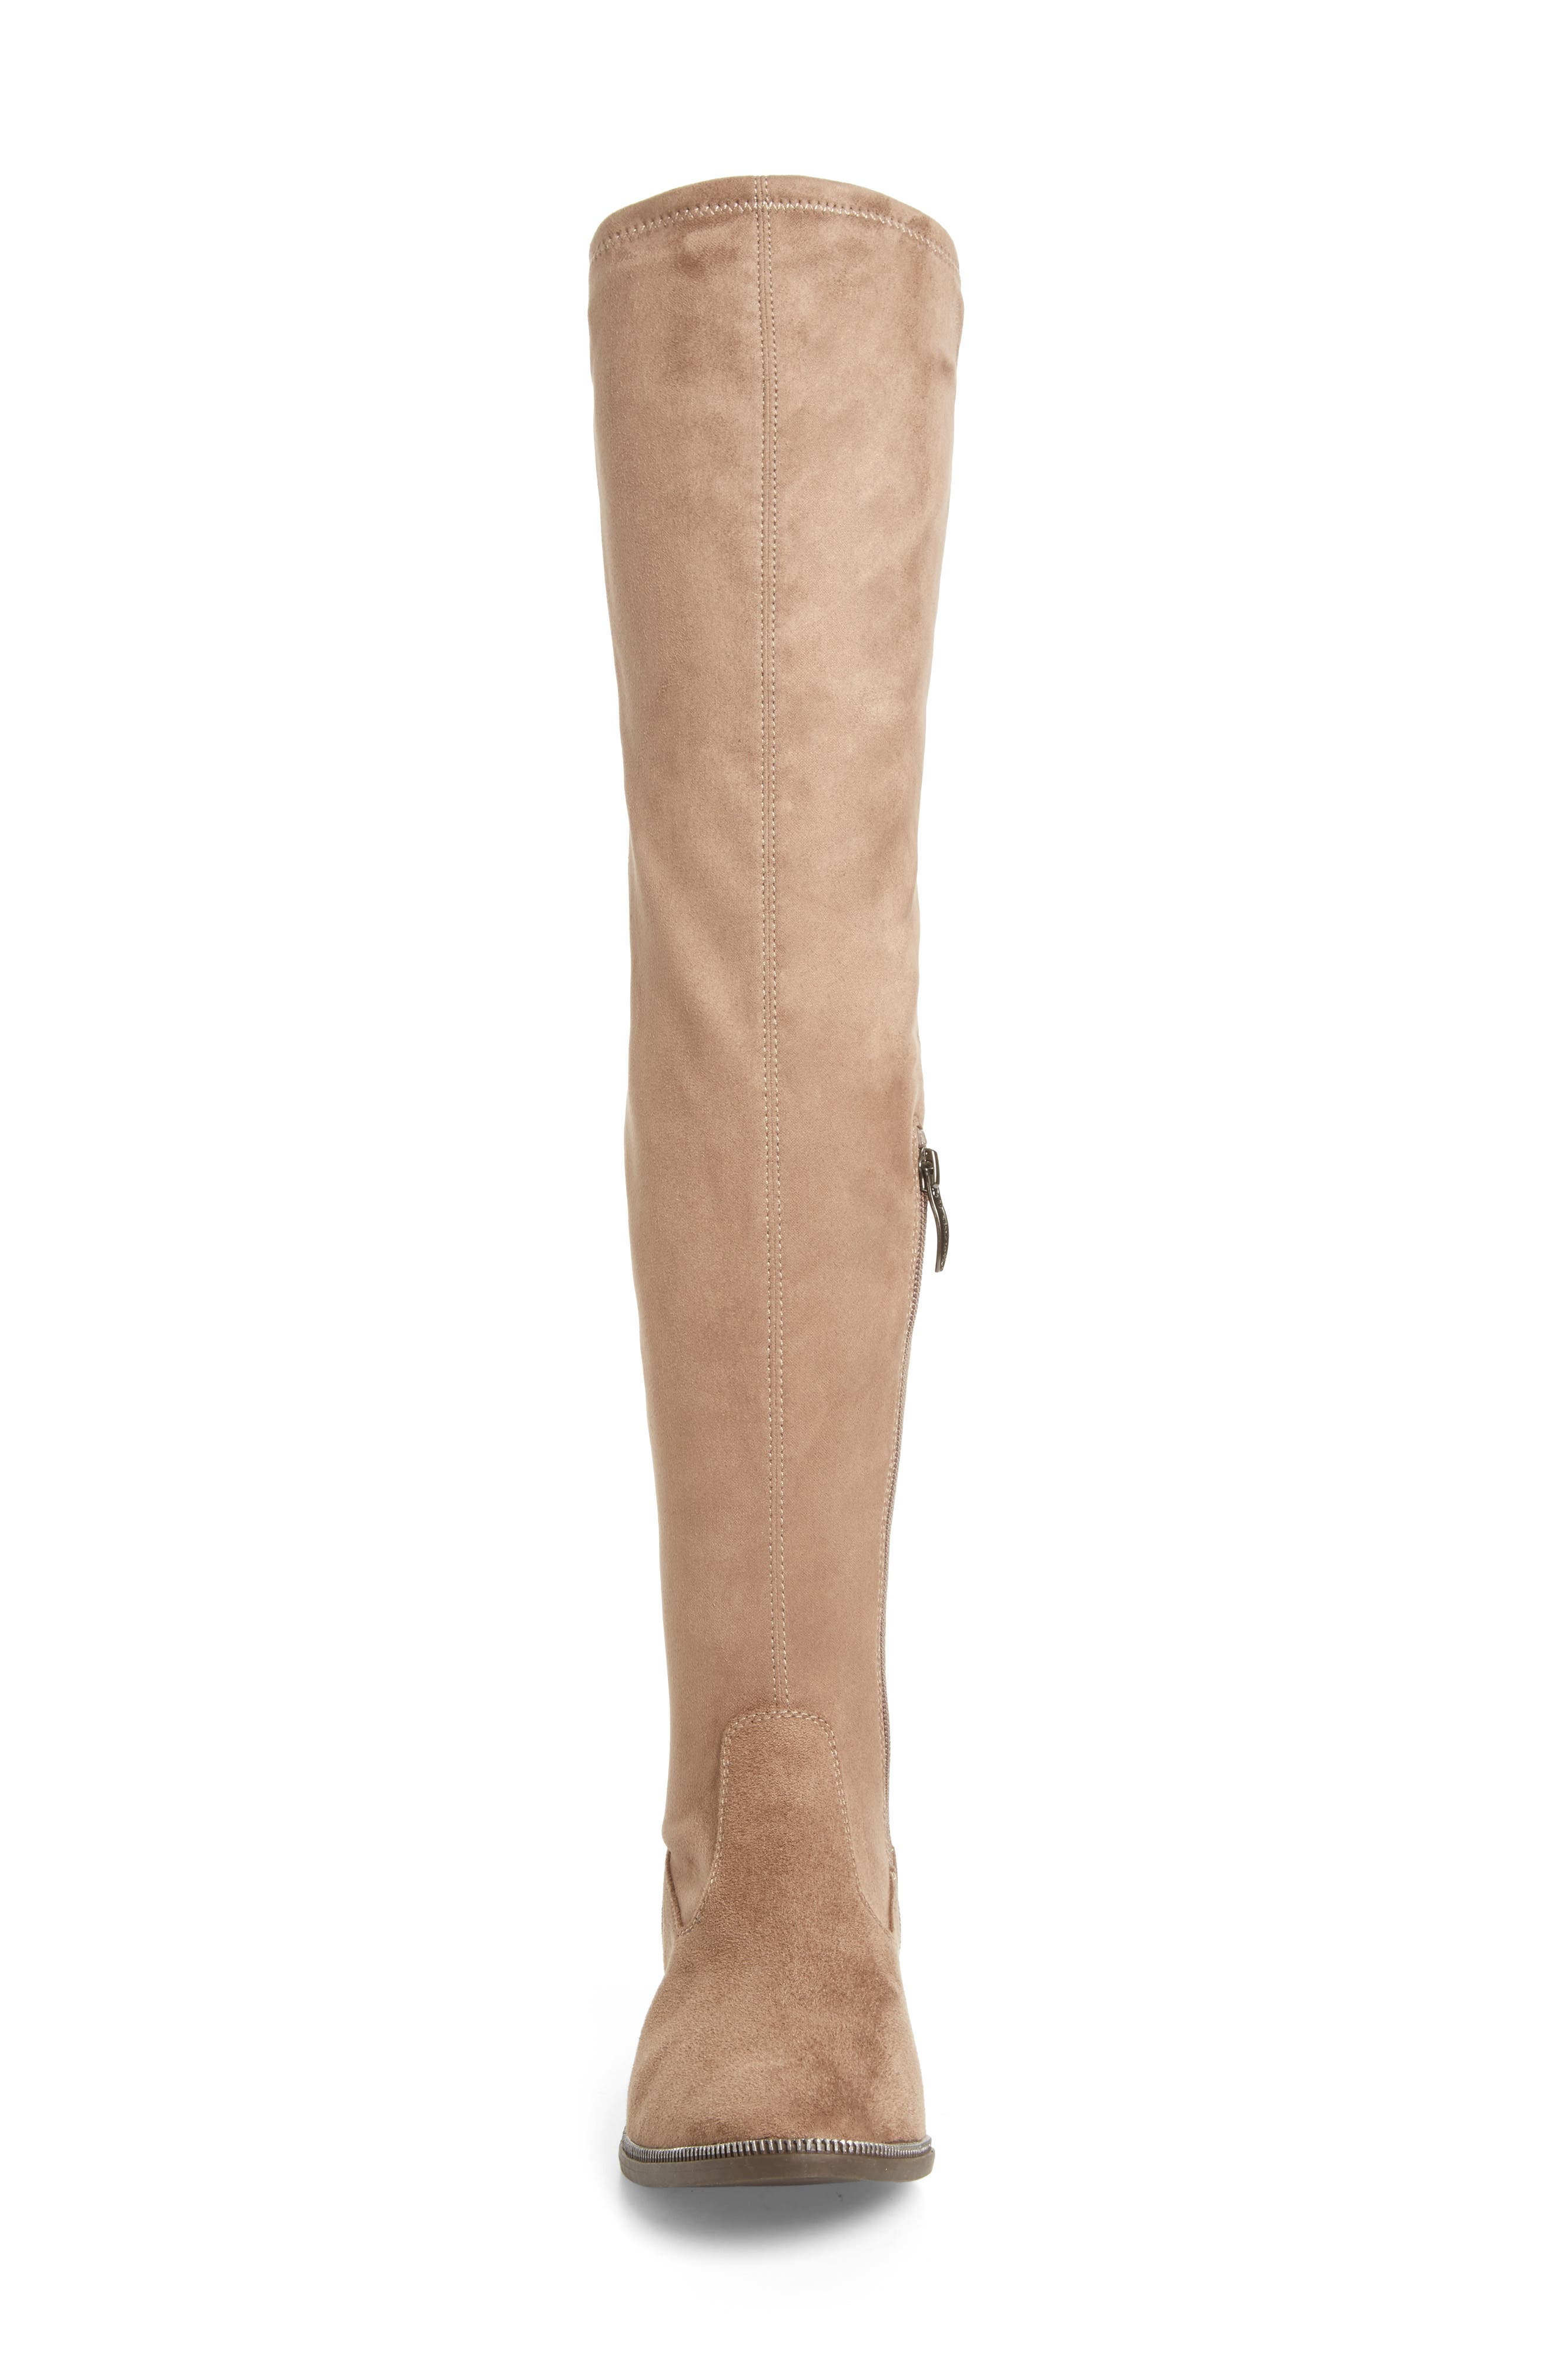 Phanie Over the Knee Stretch Boot,                             Alternate thumbnail 4, color,                             Dune Fabric